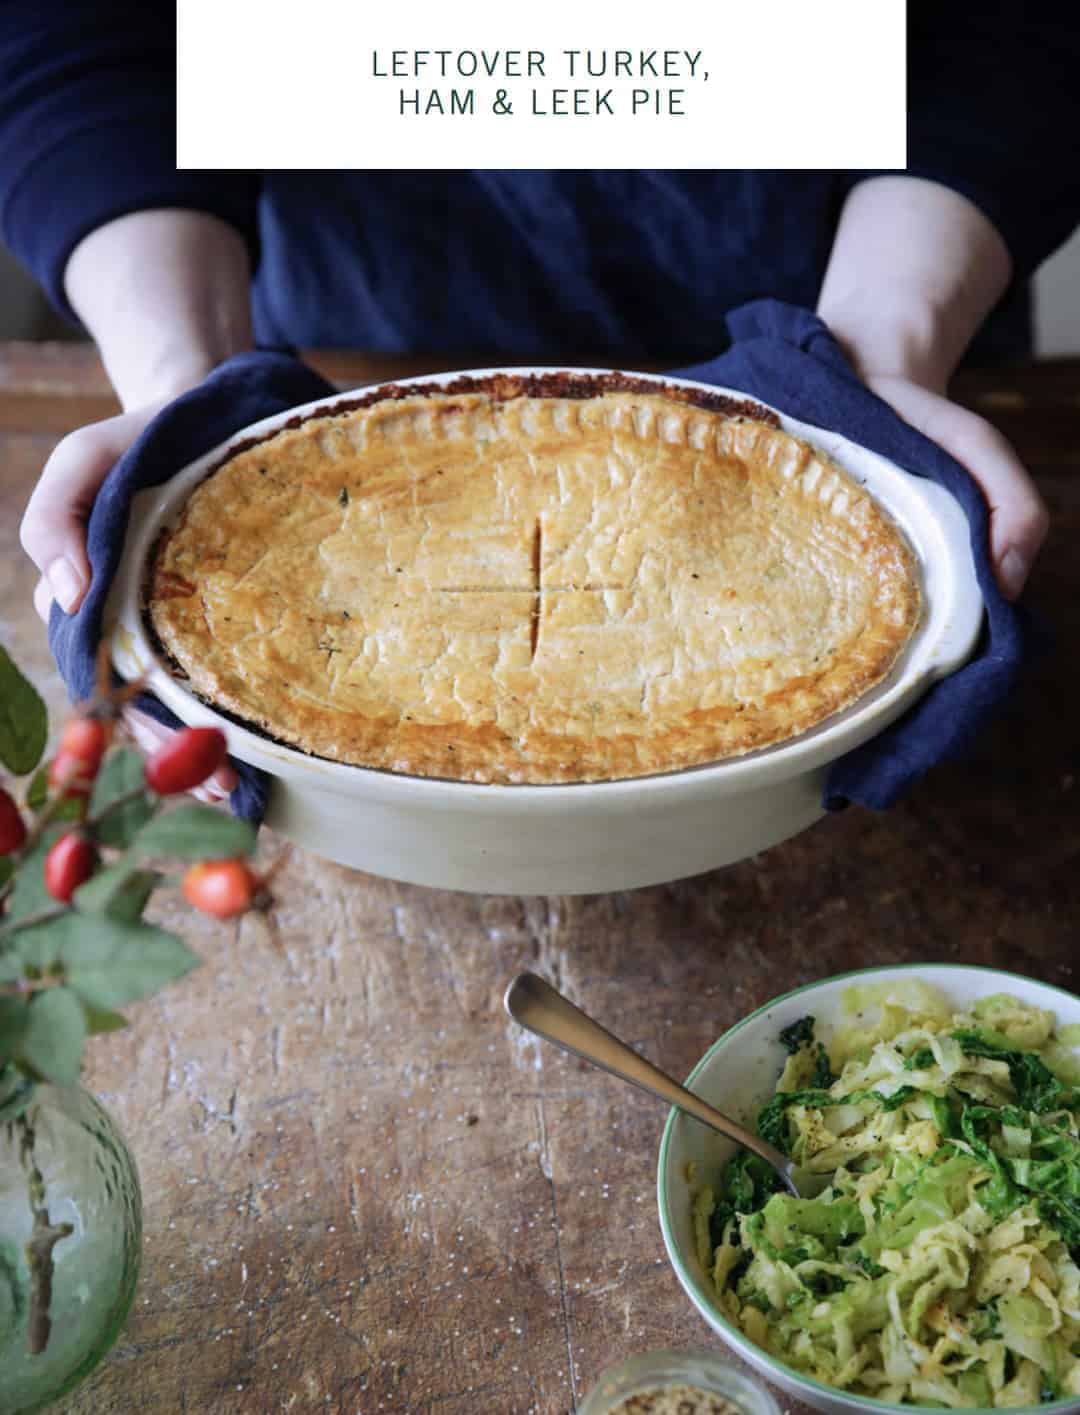 I love this leftover turkey and ham pie recipe by Daylesford organic - click through to get the free recipe ebook with some simply beautiful and seasonal festive recipes to take the hassle out of Christmas lunch and festive entertaining